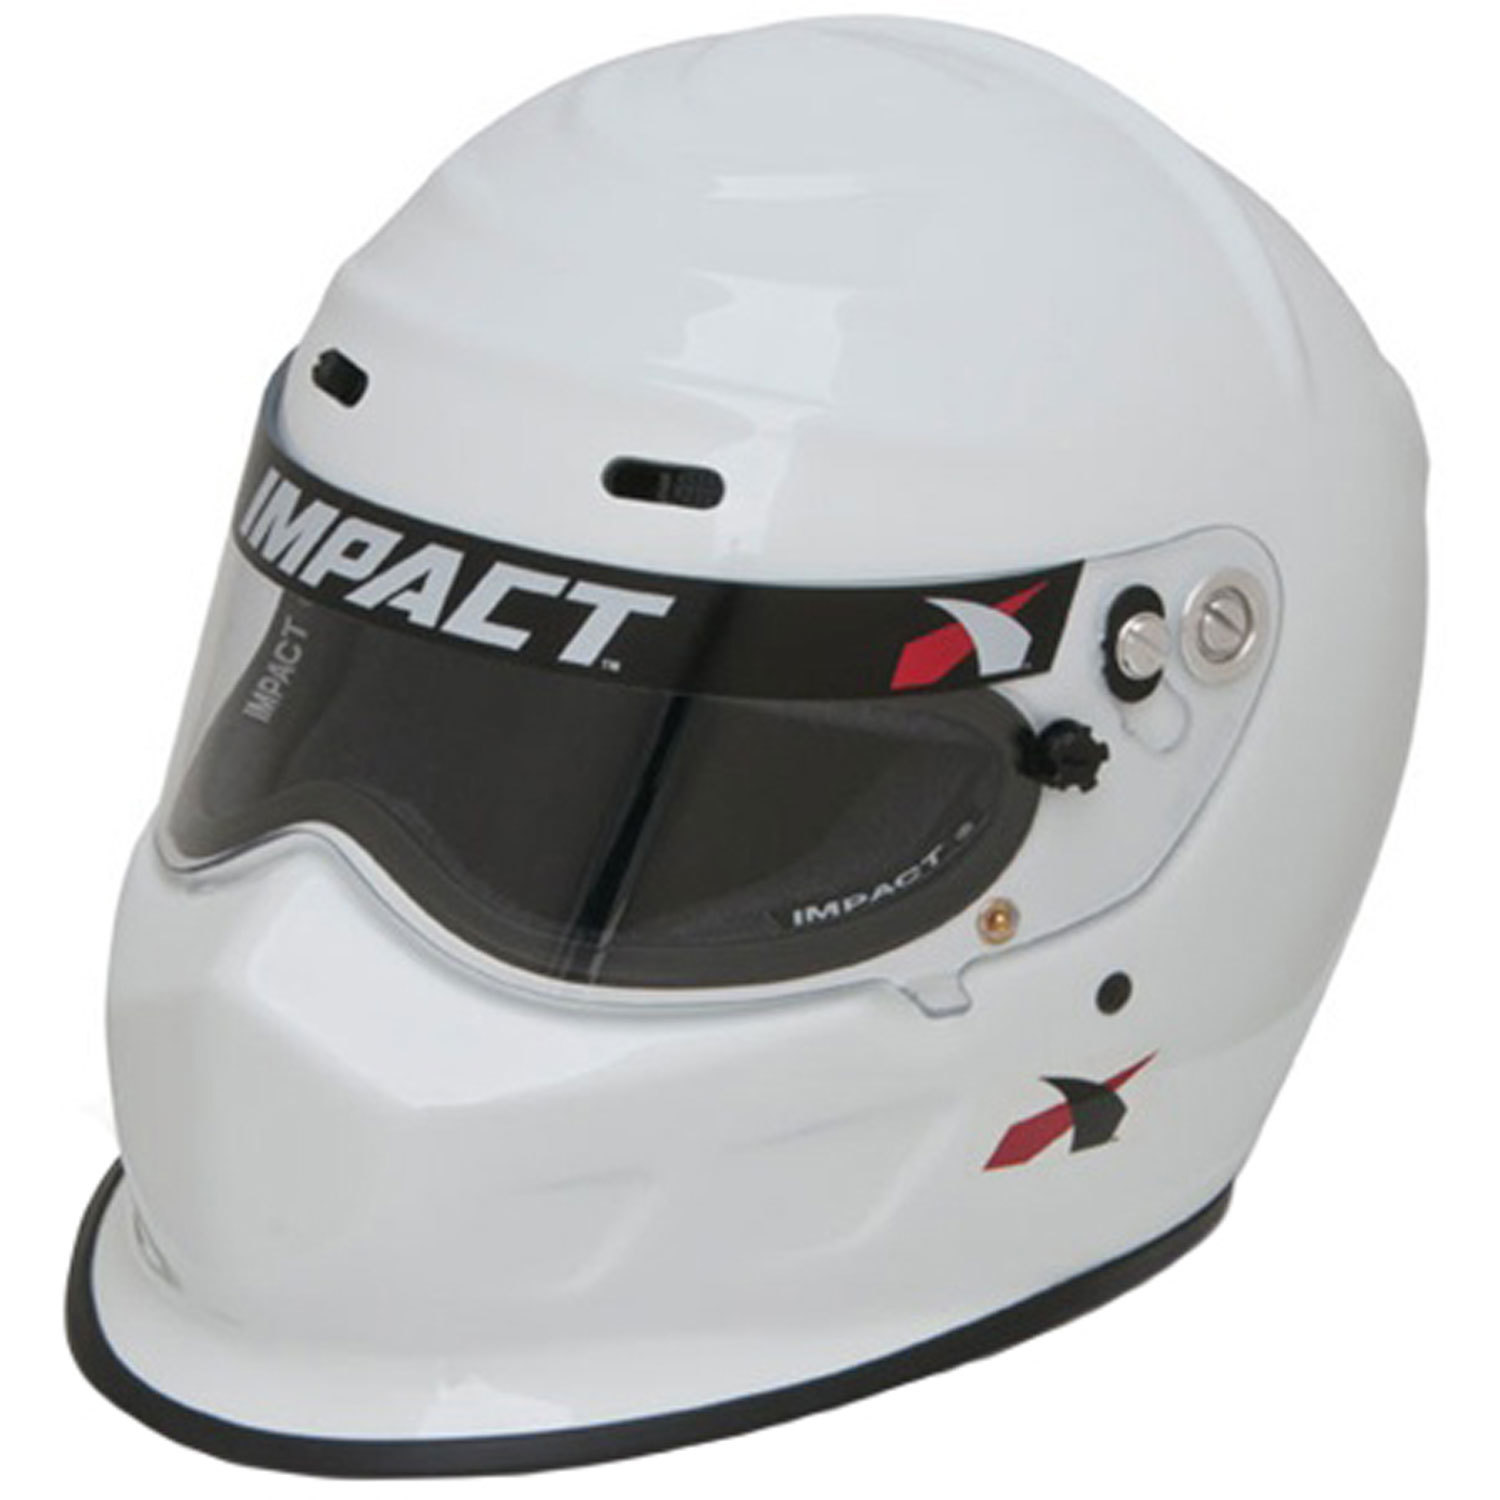 Impact Racing 13015309 Helmet, Champ, Snell SA2015, Head and Neck Support Ready, White, Small, Each